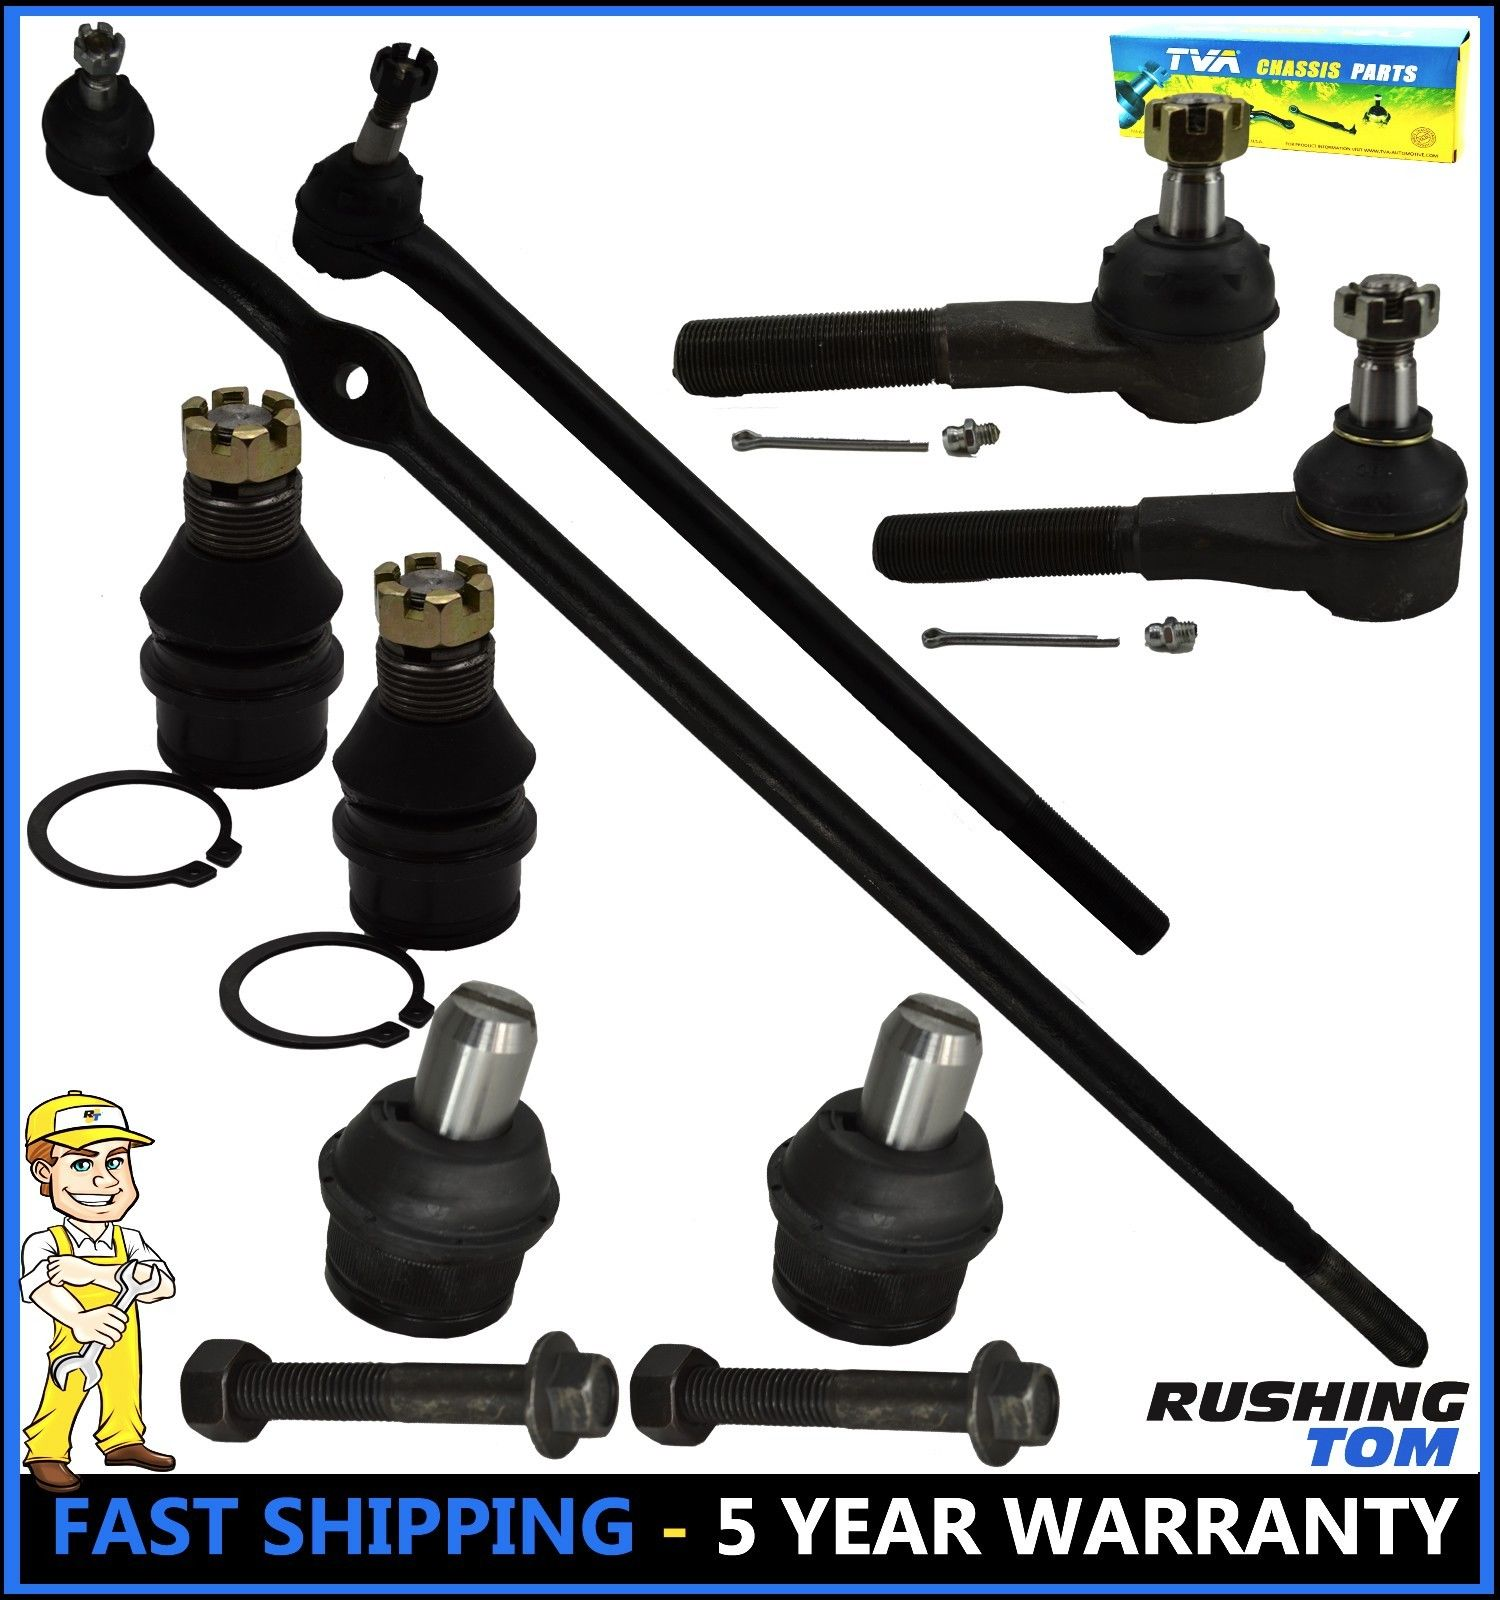 8 Pc Set Upper Lower Ball Joint Inner Outer Tie Rod End Ford F150 2WD RWD 87-96